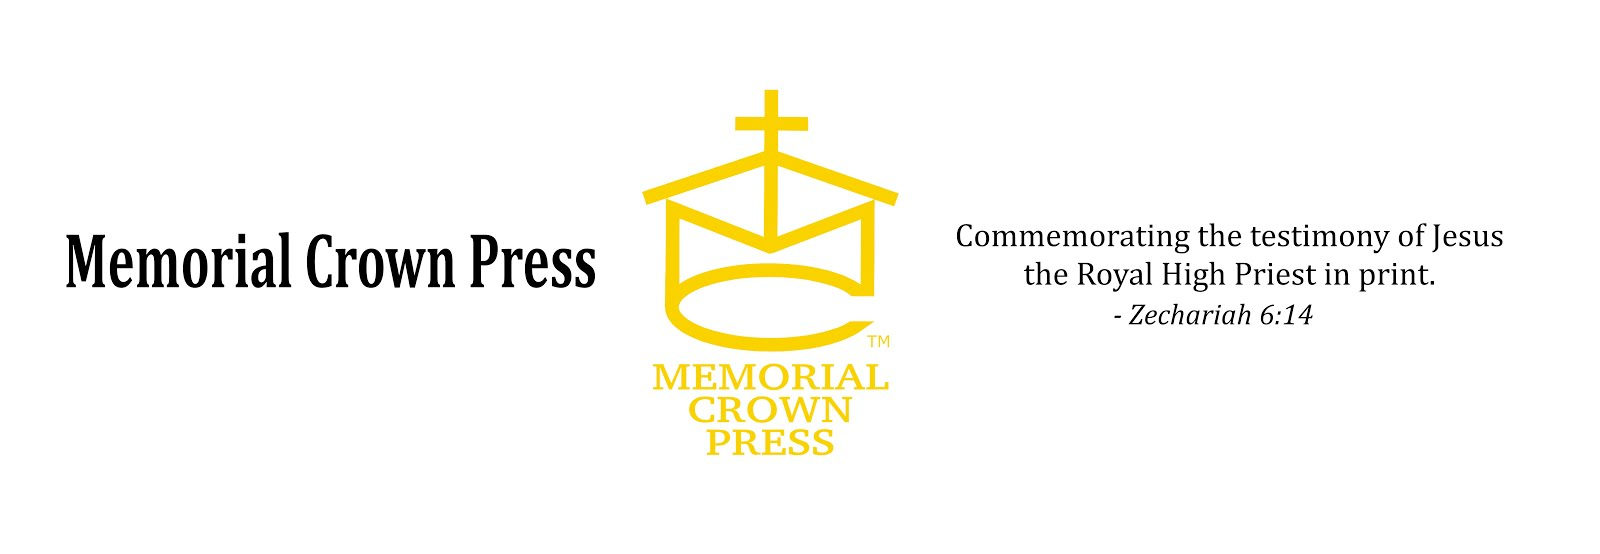 Memorial Crown Press